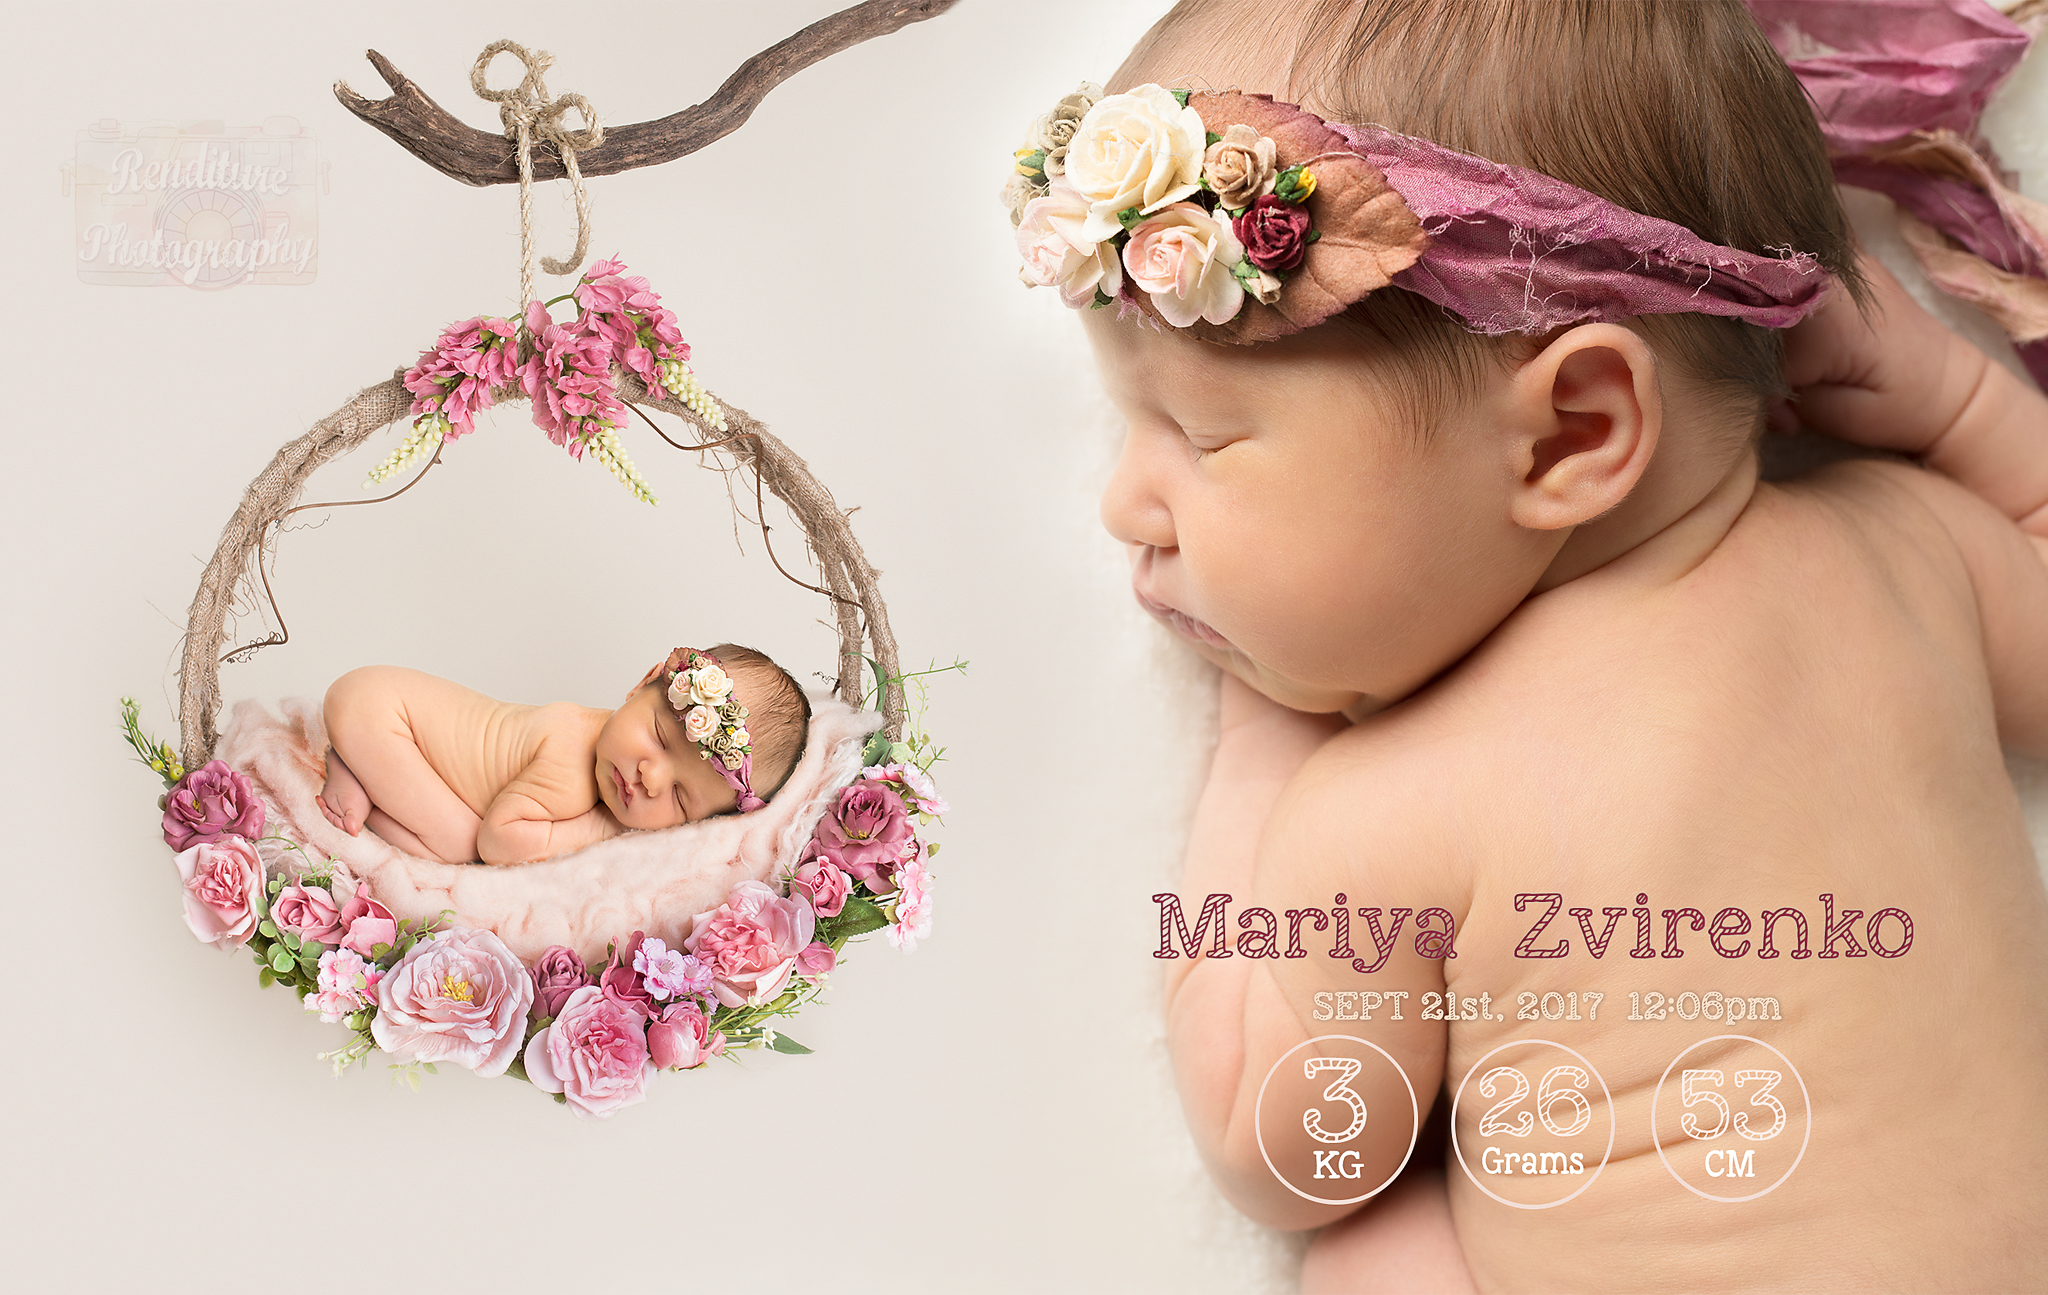 Saskatoon-Newborn-Family-Renditure-Baby-Photography-Photographer-Maternity-Pregnancy-Saskatchewan-427 FBR.jpg